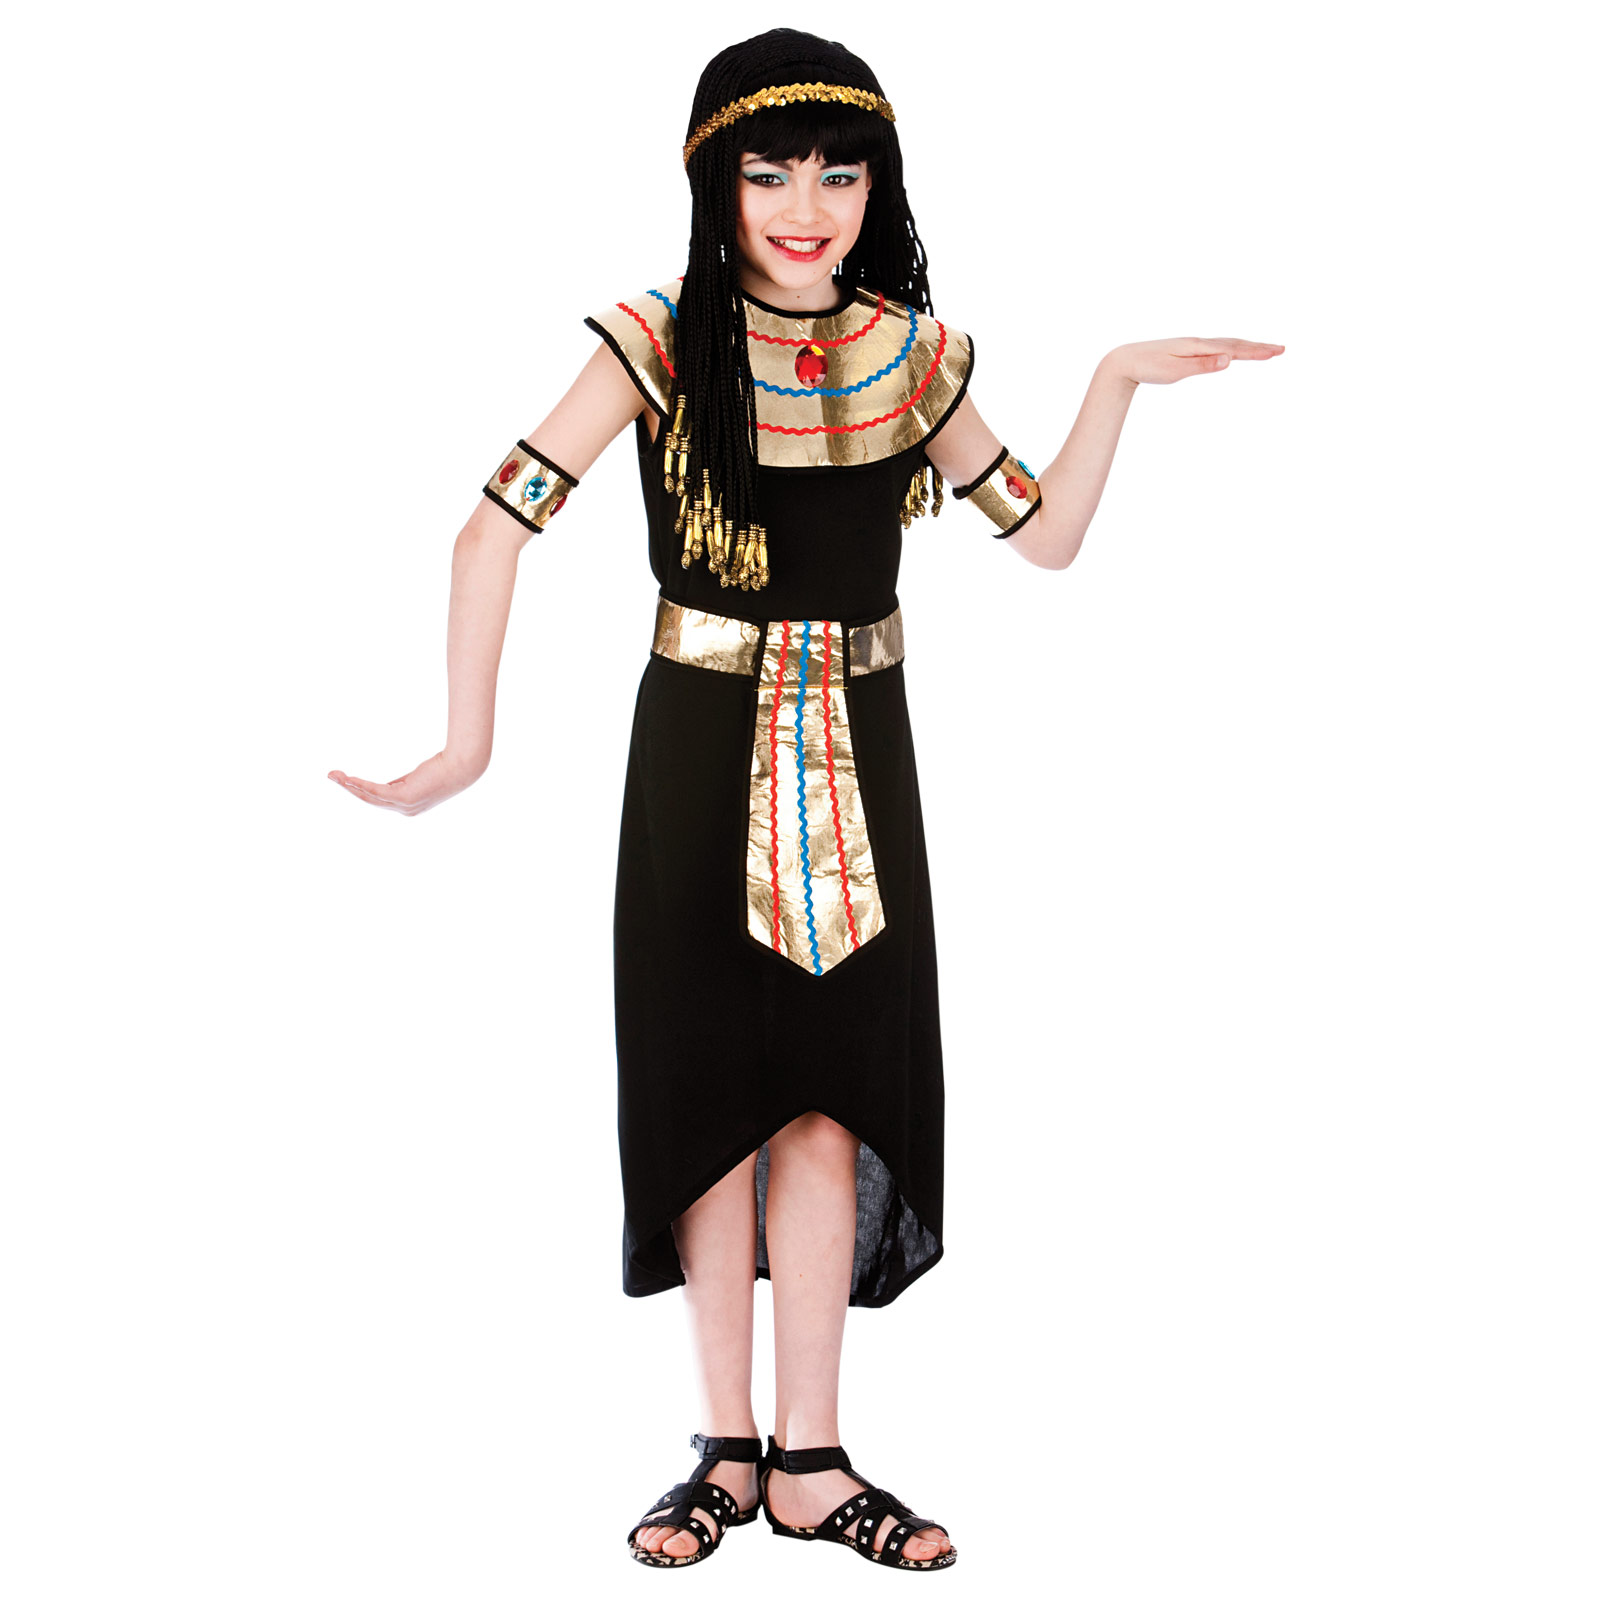 Ancient Egyptian clothing for children was very simple and consisted of simple pieces of cloth. Usually children did not wear any clothes because of the hot and dry weather. During the winter months, however, ancient Egyptian clothing for children consisted of wraps and cloaks which could be stitched or just wrapped around the body.